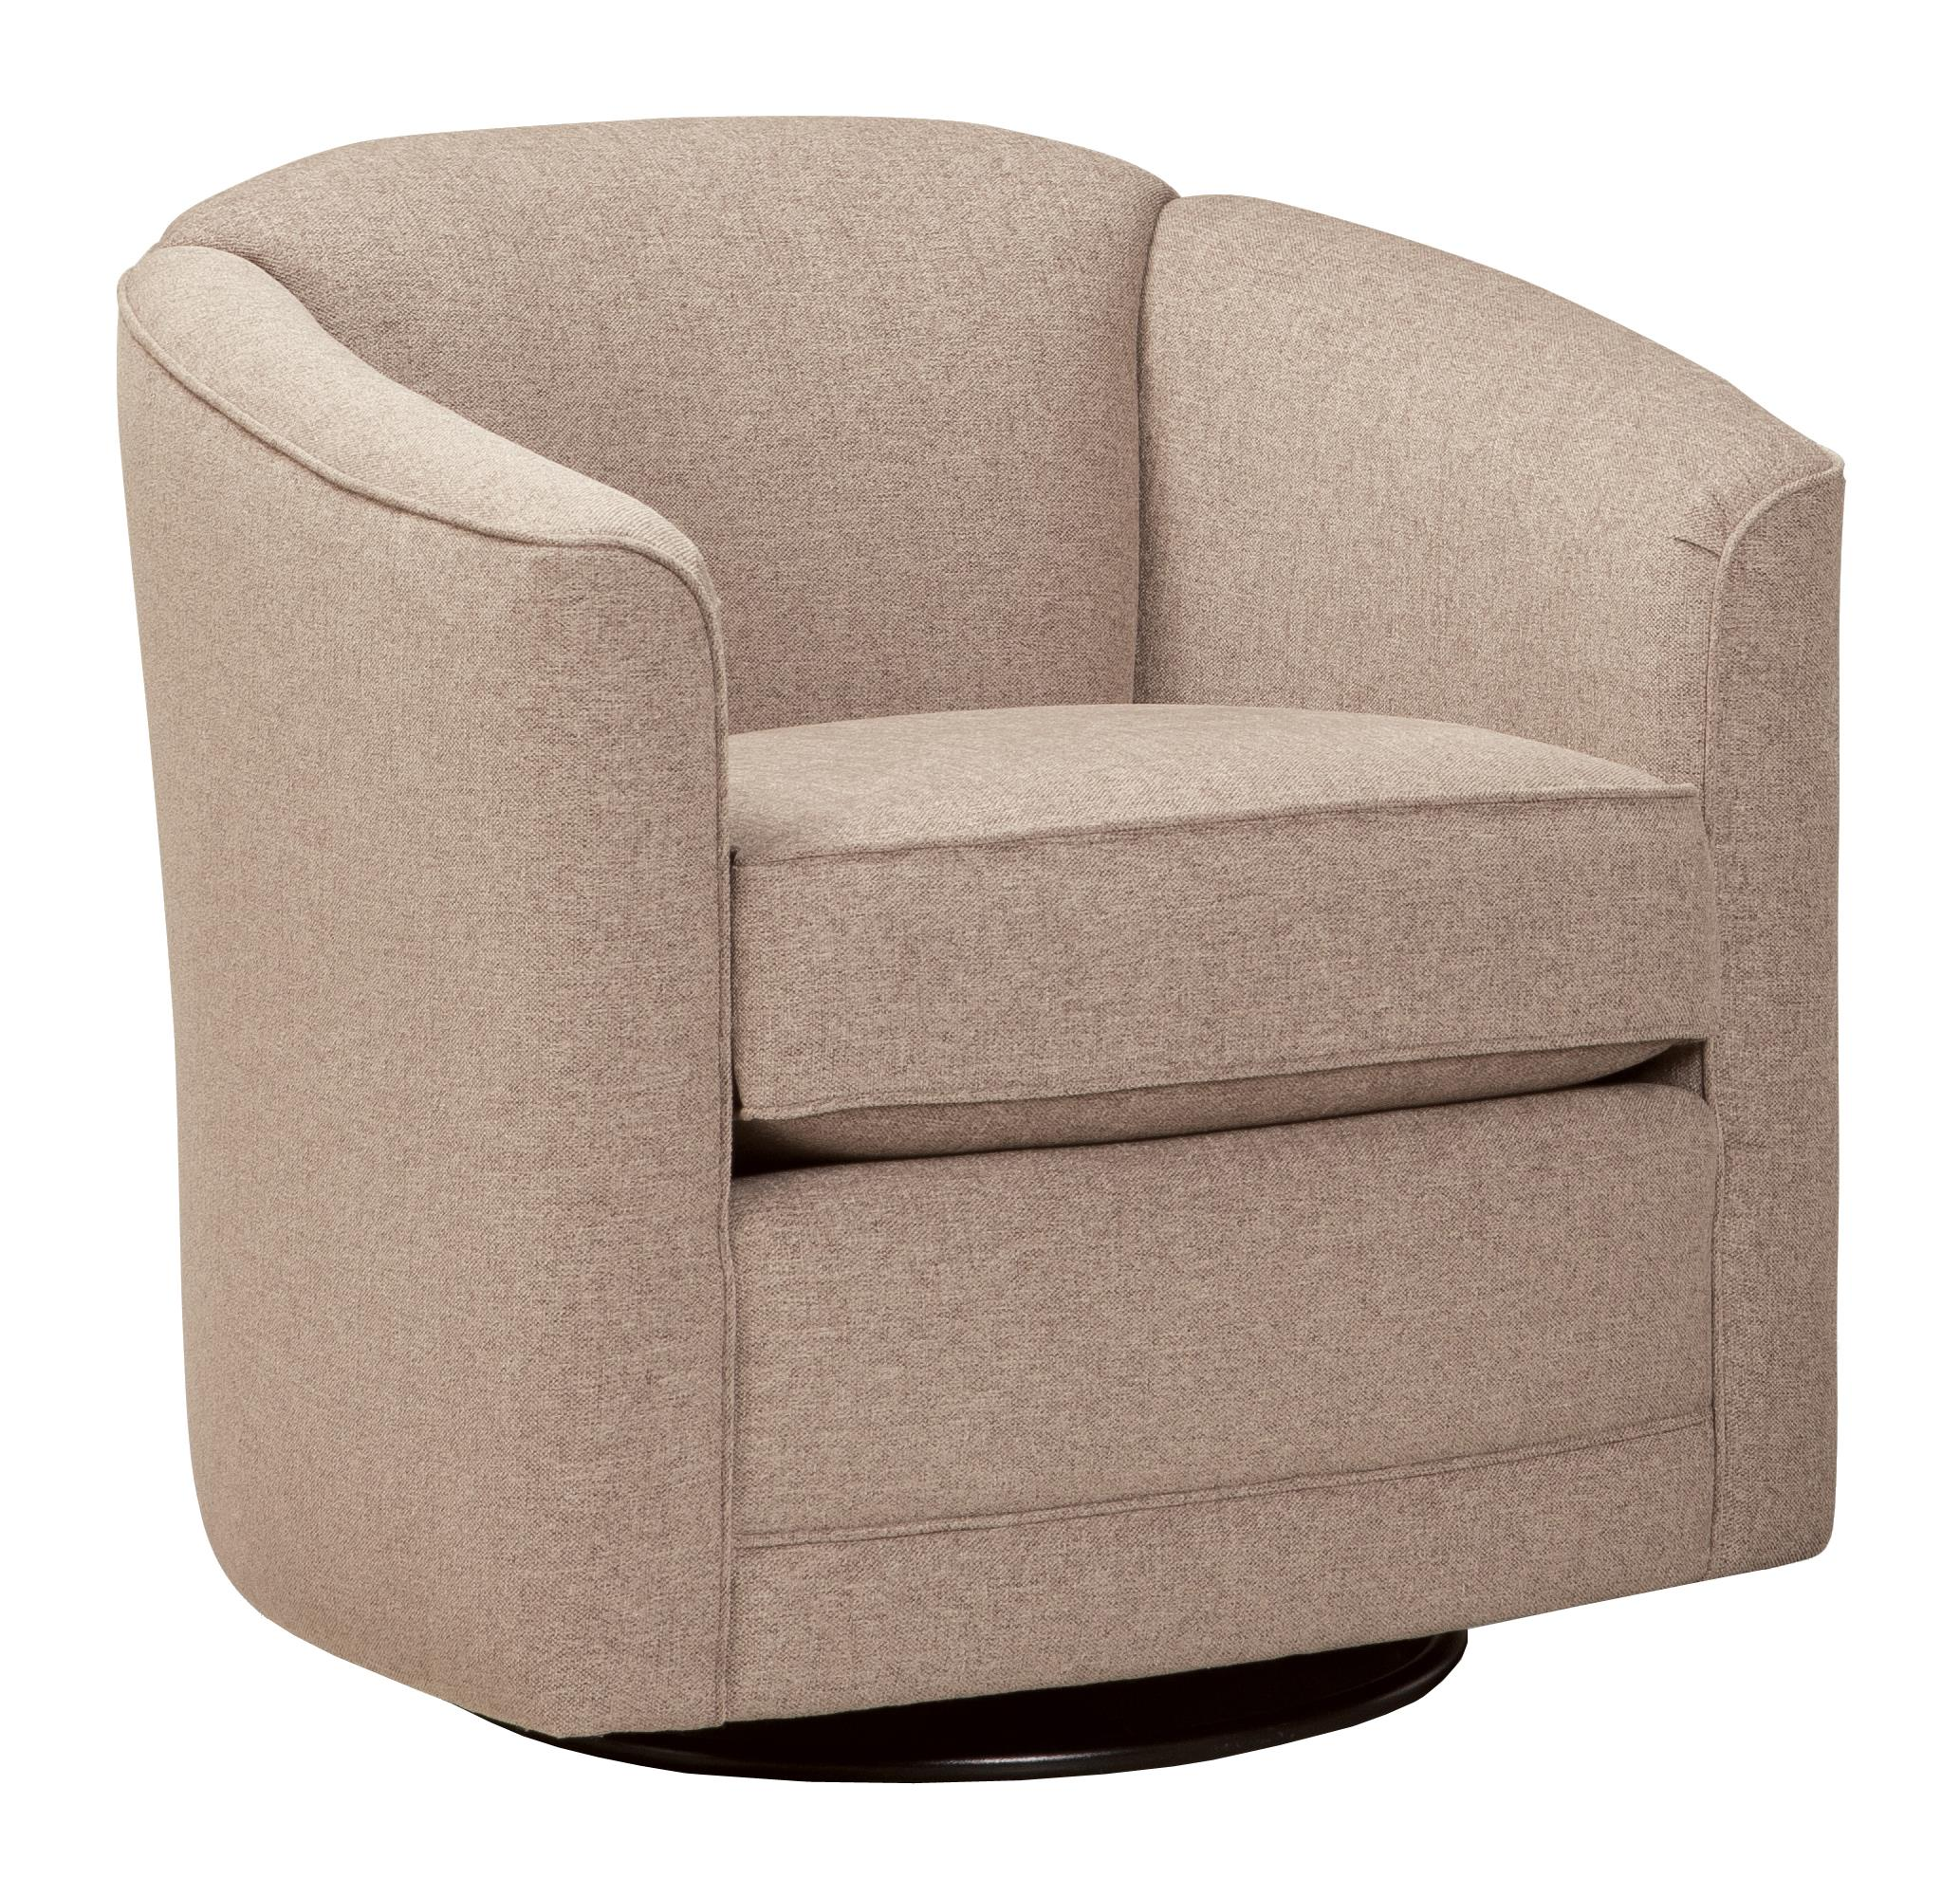 506 Swivel Glider Chair by Smith Brothers at Mueller Furniture